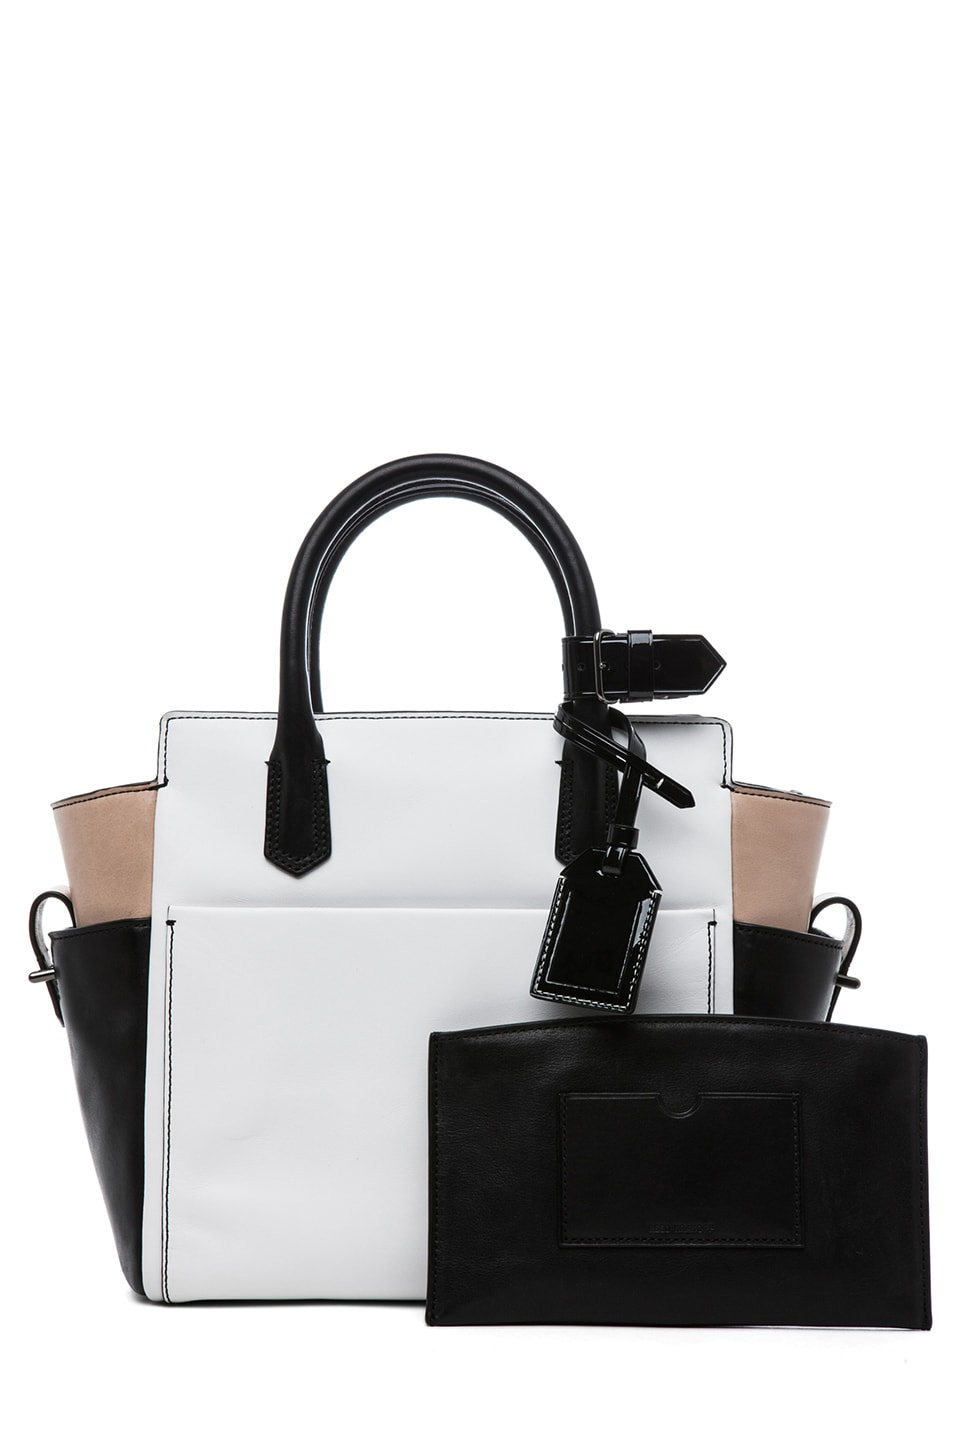 Image 4 of Reed Krakoff Patent Mini Atlantique in Nude Black